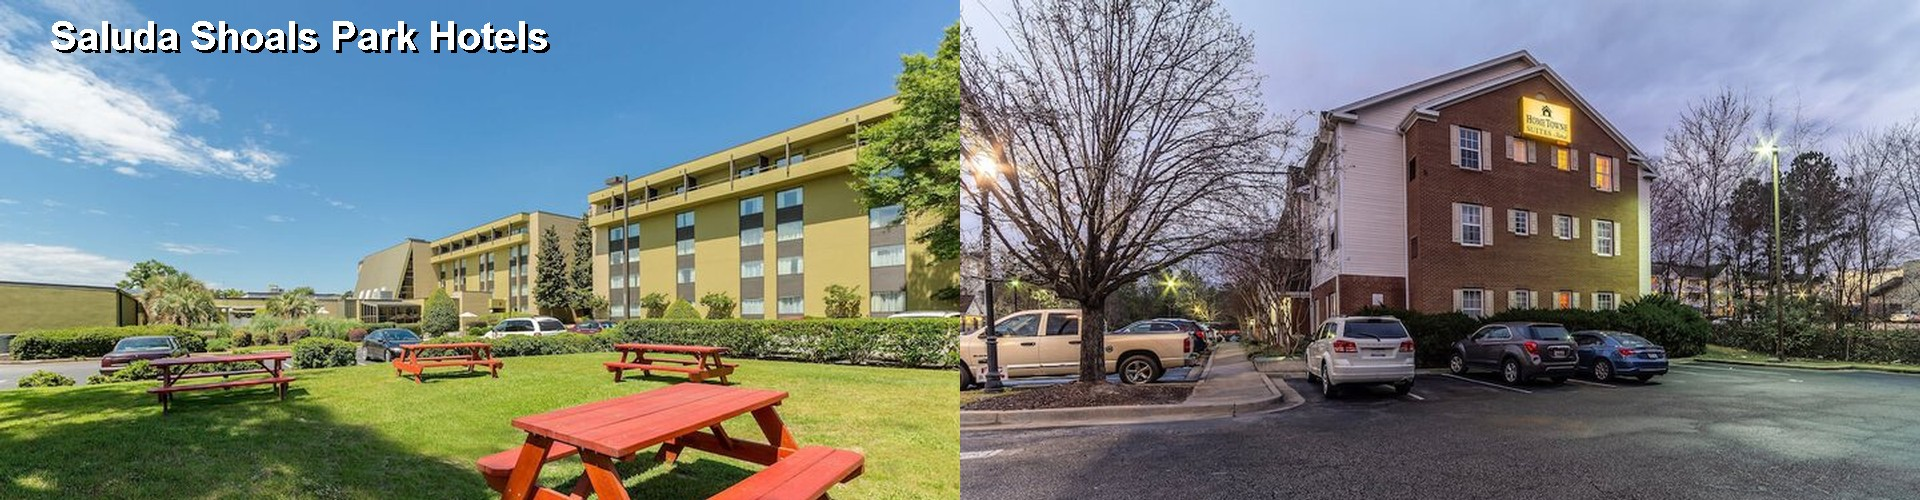 5 Best Hotels near Saluda Shoals Park